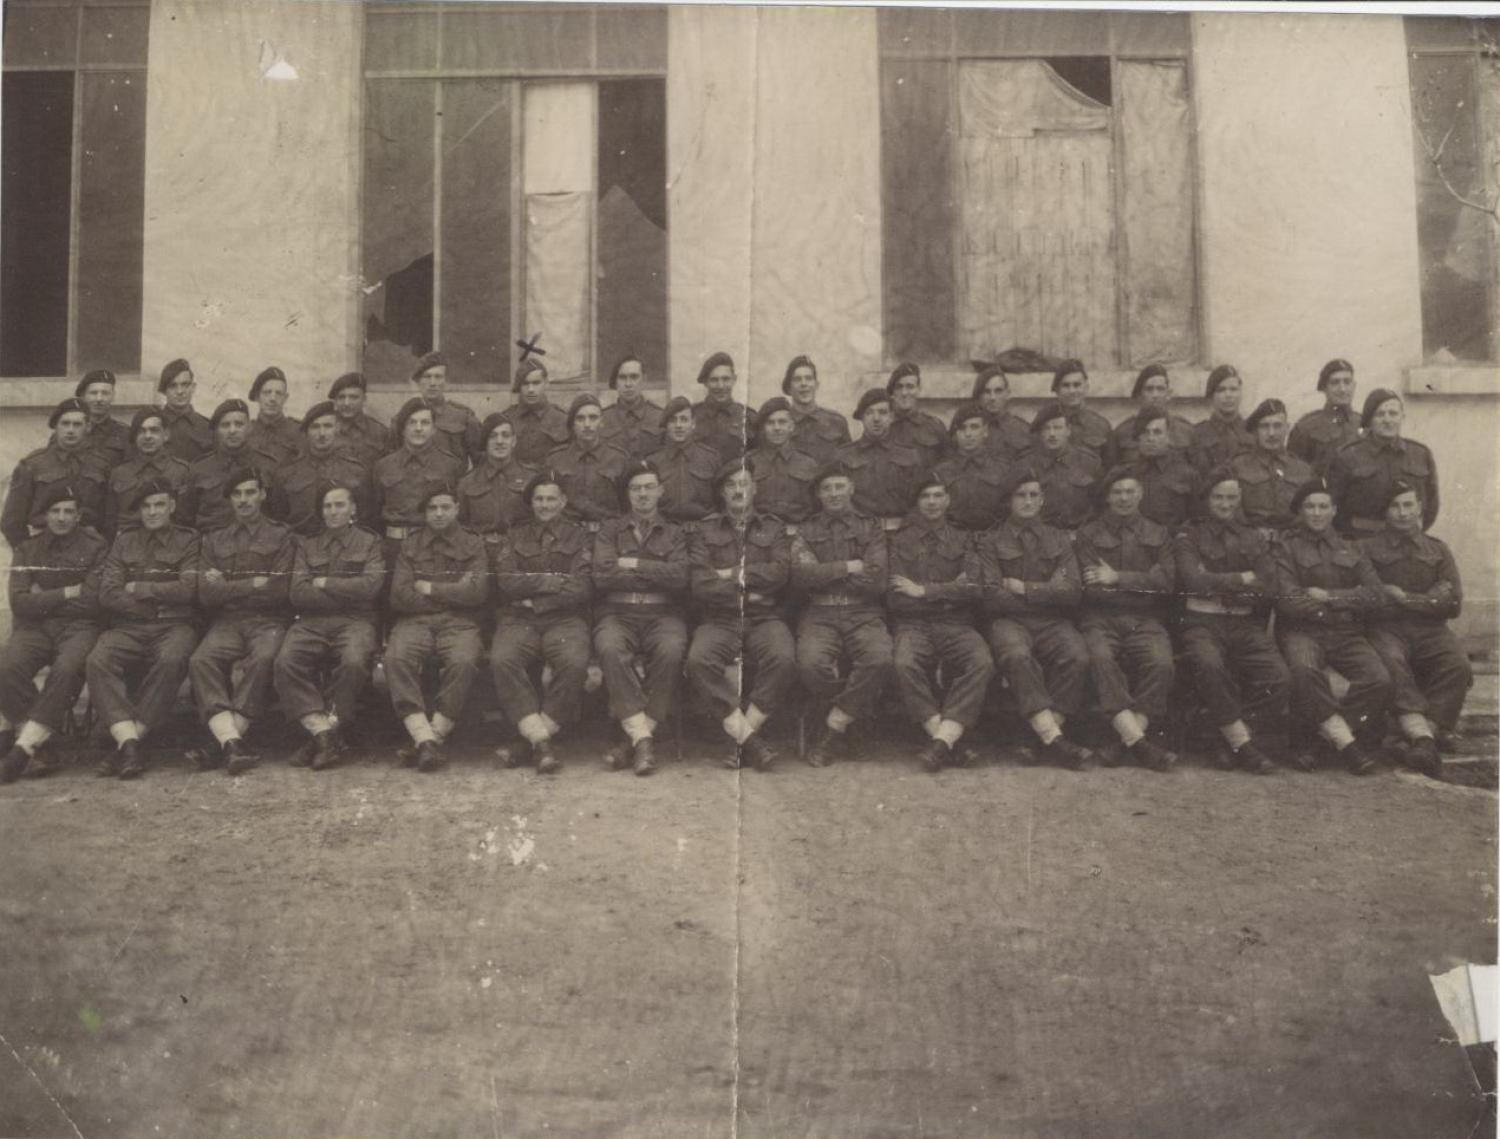 No.2 Cdo 4 troop at the SOE Base in Monopoli, Italy